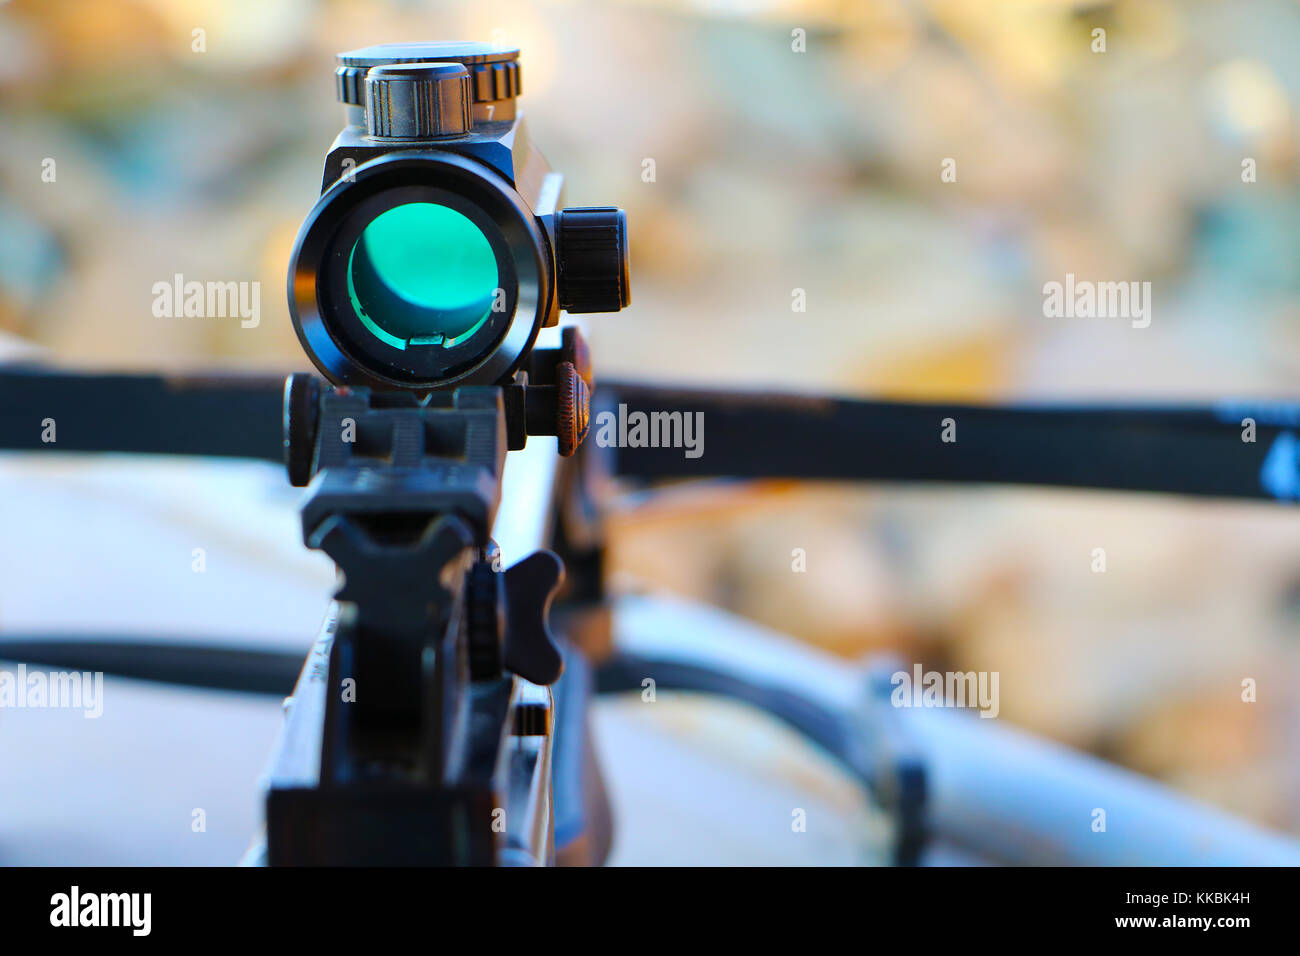 Crossbow optical sight  aiming from the first person on defocused blurred background - Stock Image